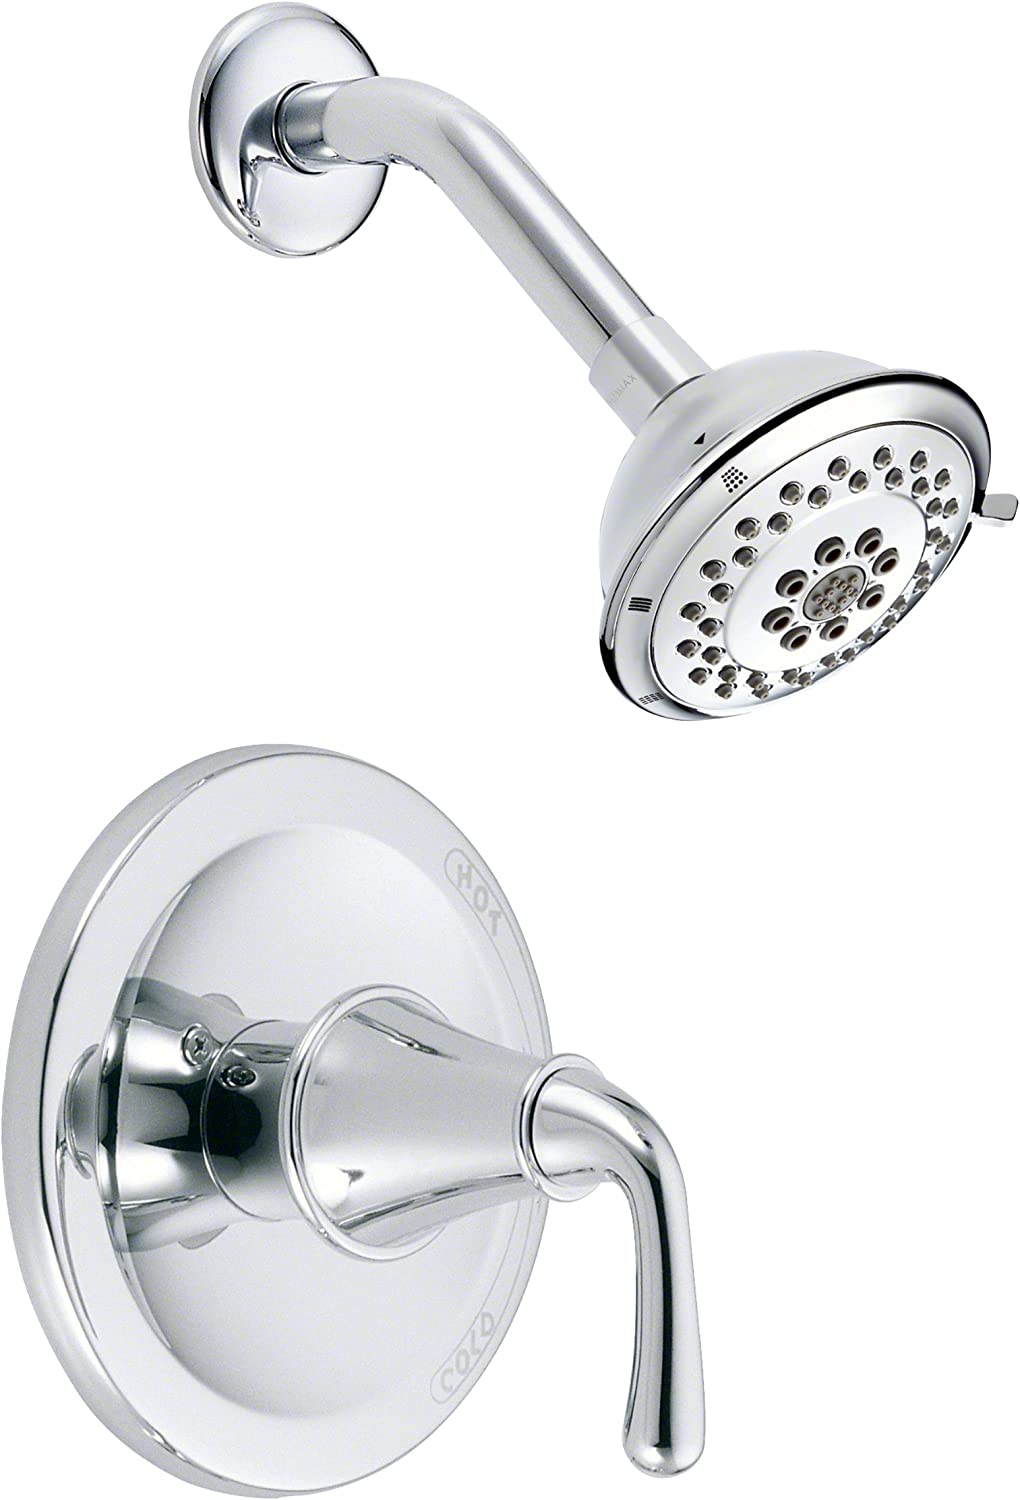 Danze D510511T Pressure Balanced Shower Trim Package with Single Function Shower